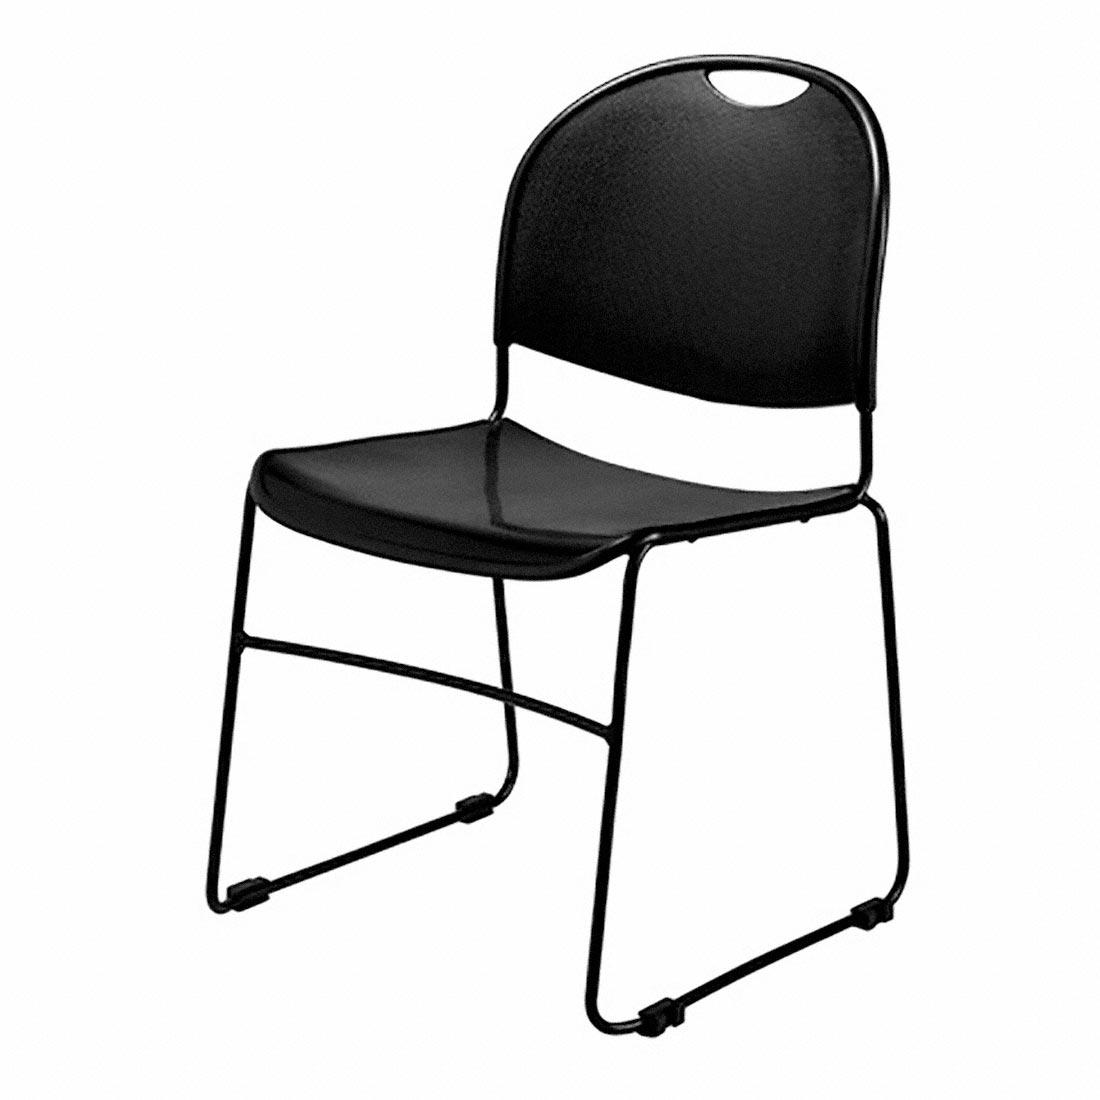 public seating chairs white rocking chair target national 850 series commercialine ultra compact stack nps